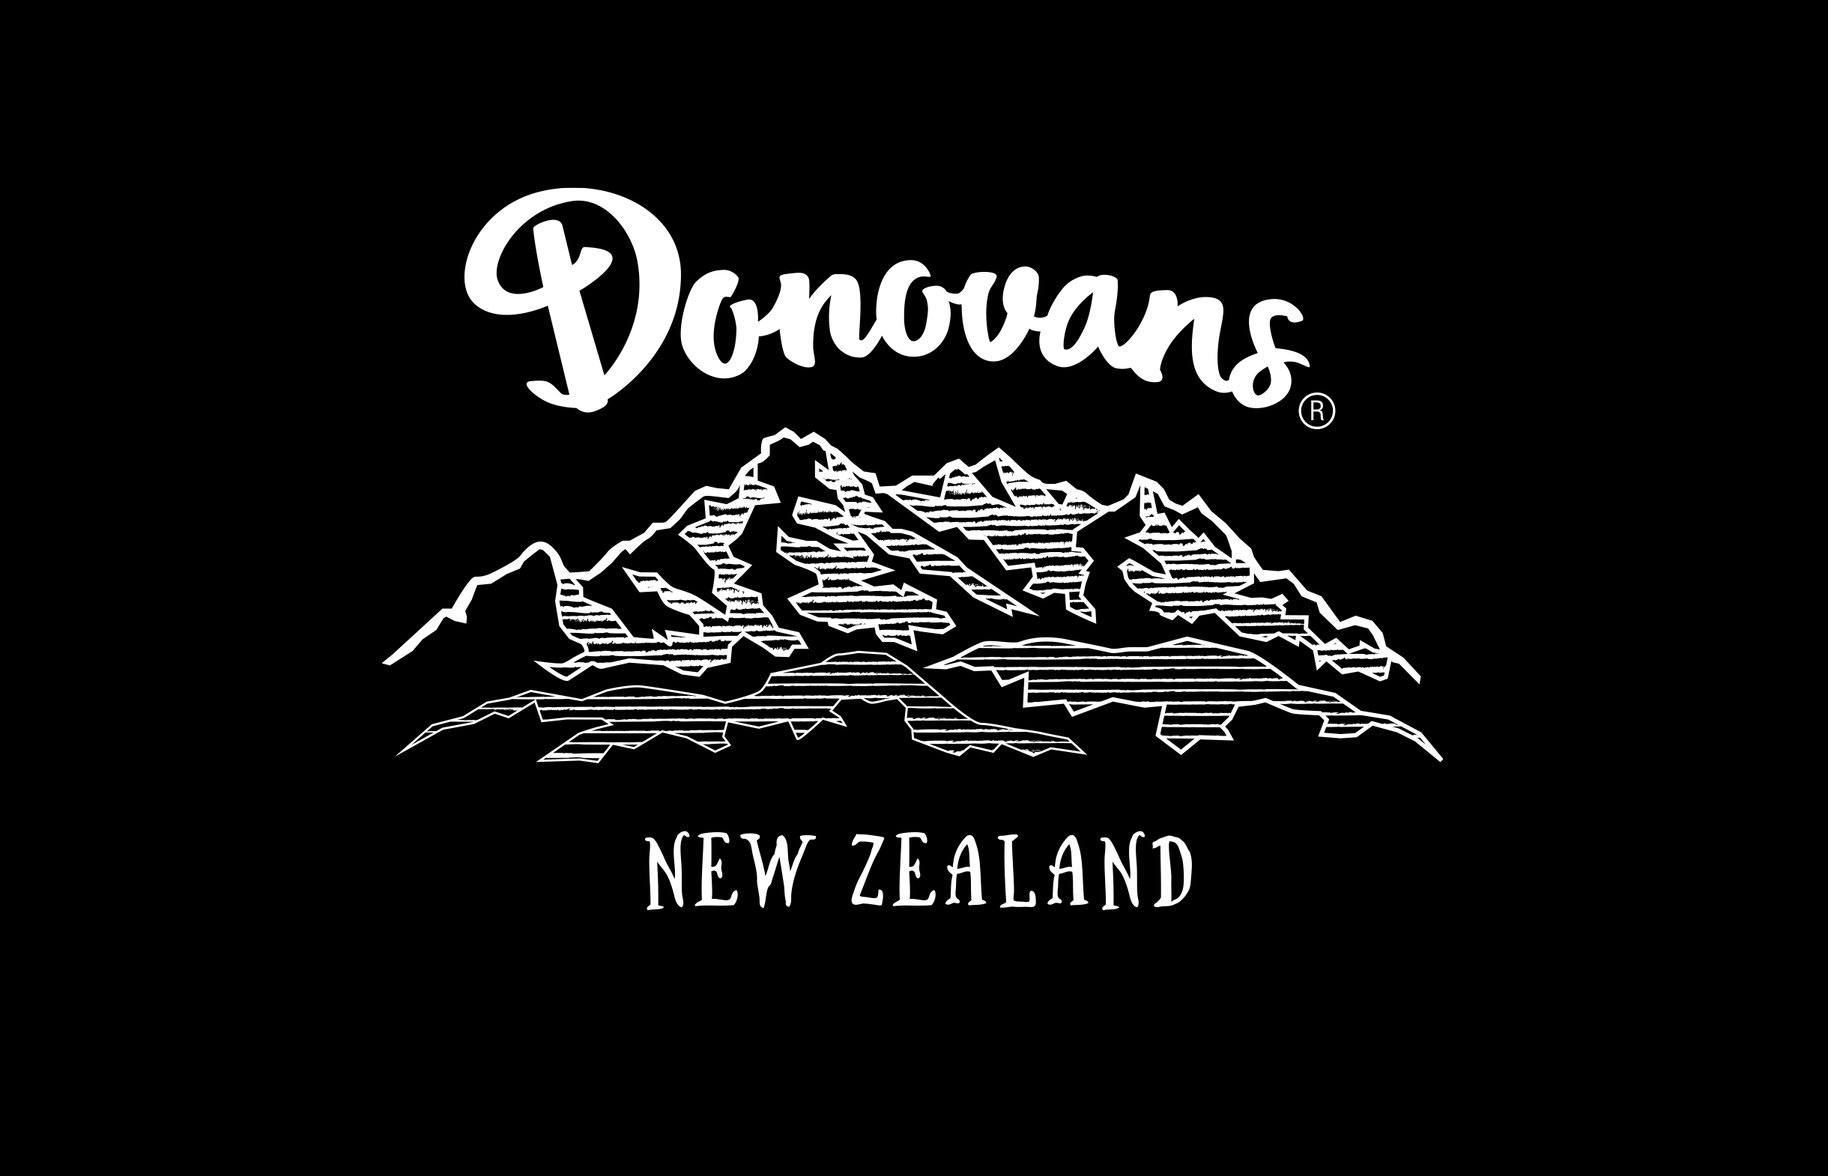 Donovans Chocolate logo graphic